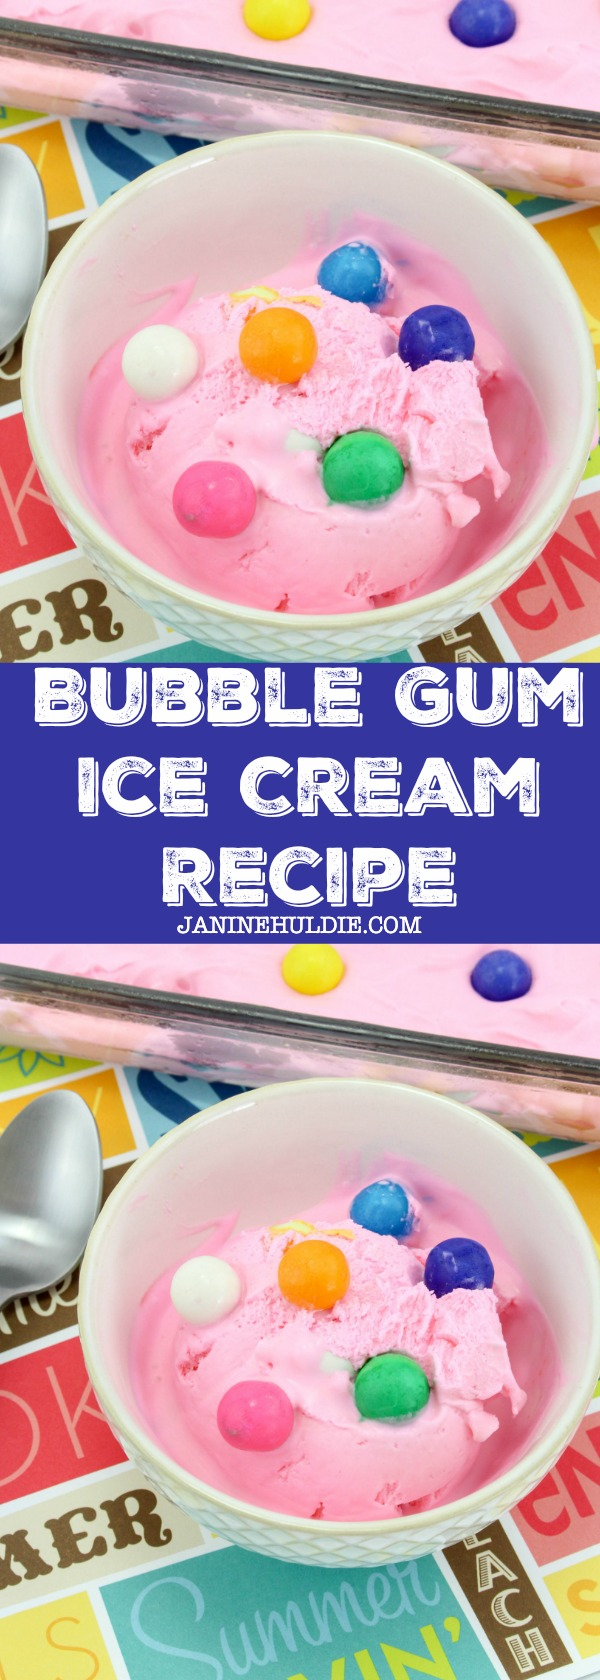 Bubble Gum Ice Cream Recipe